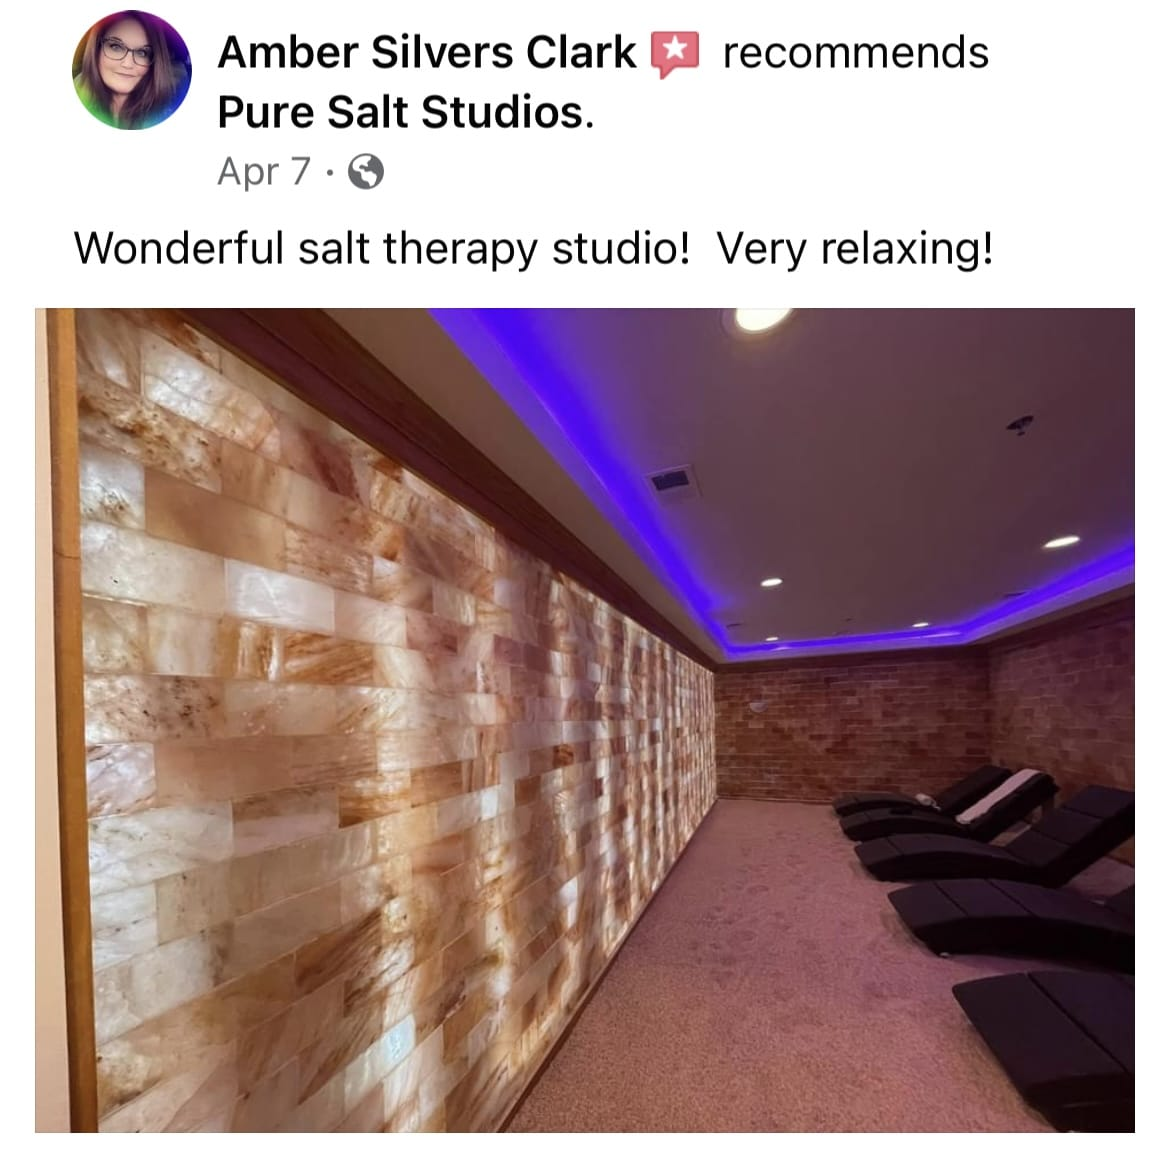 What to do on Hilton Head Island? Experience a Halotherapy session with Pure Salt Studios in Shelter Cove Marina!